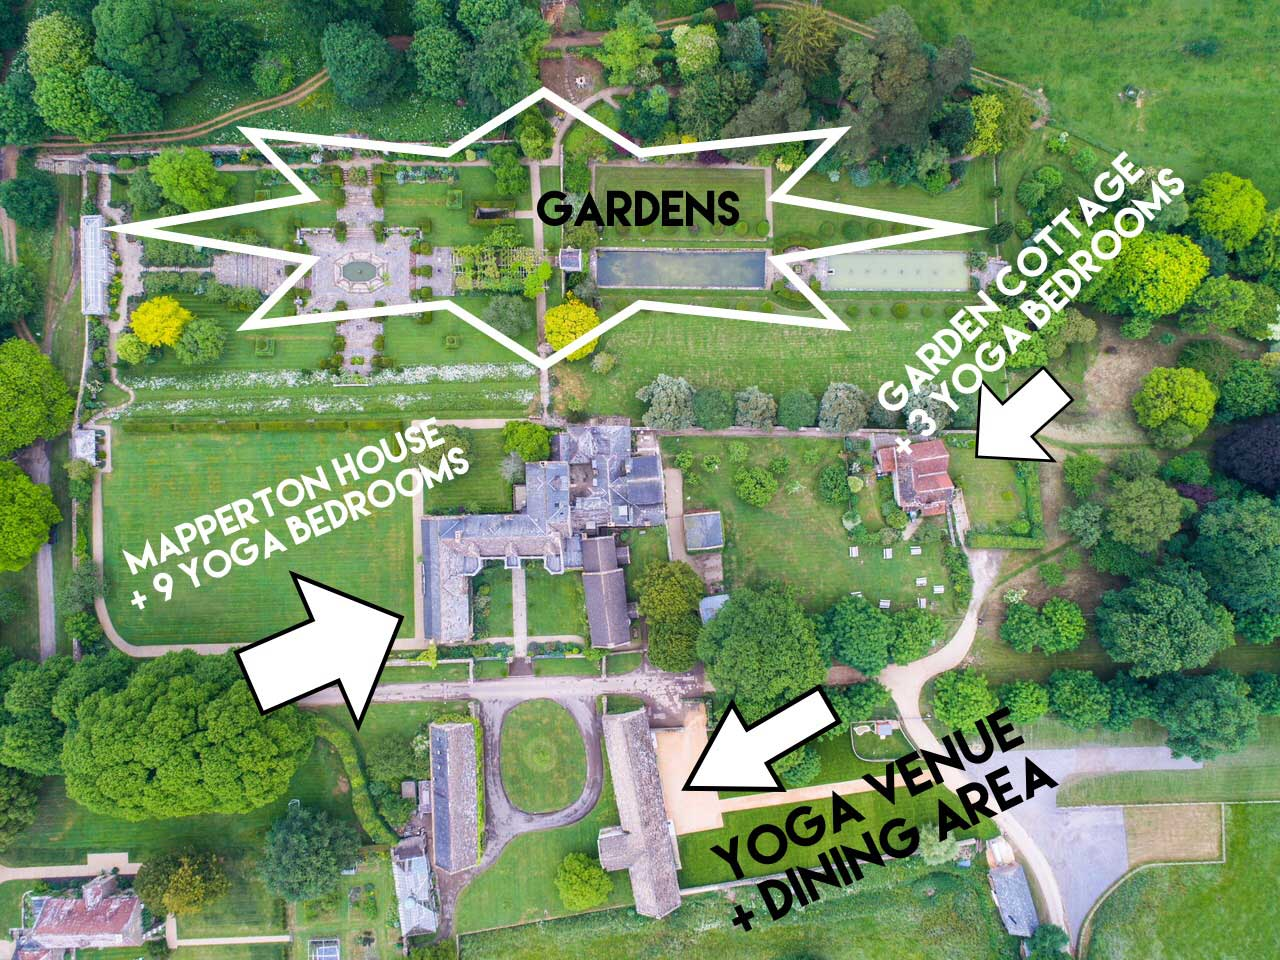 Mapperton yoga retreat map